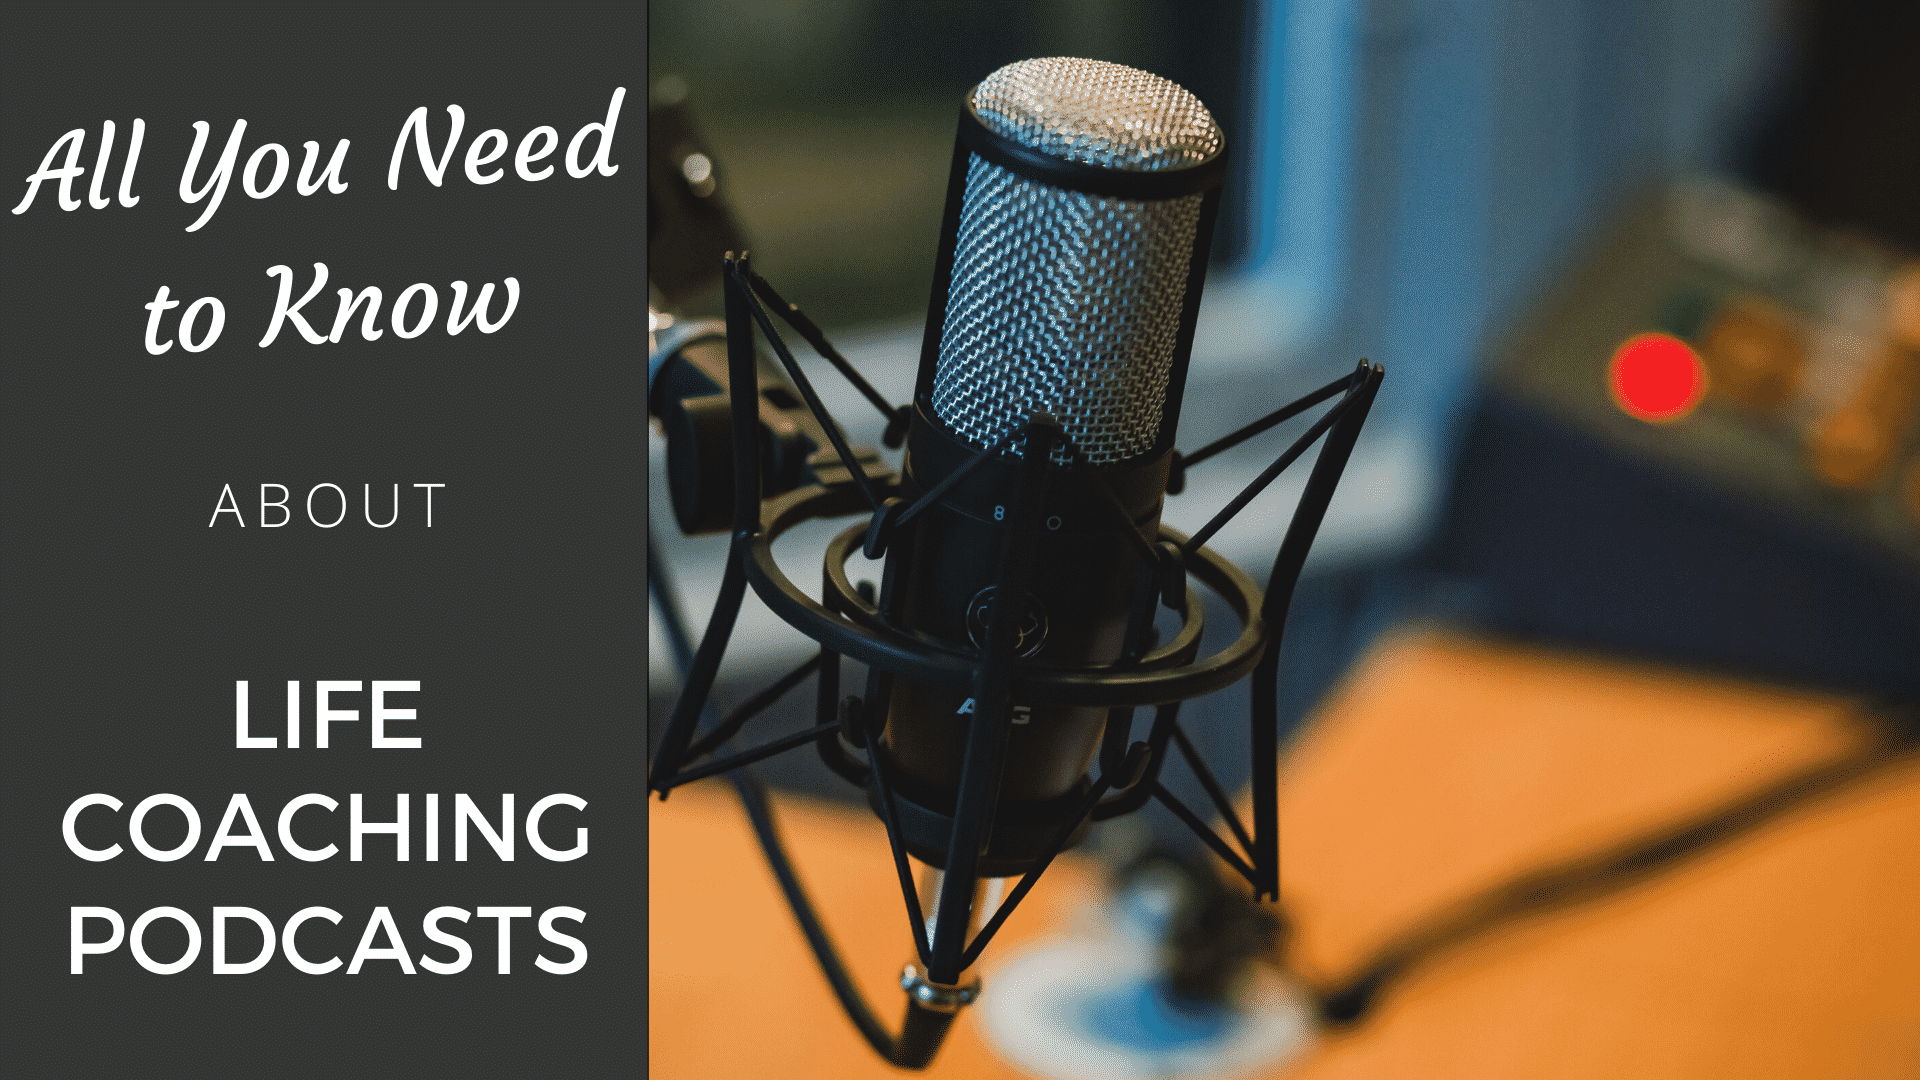 Life Coaching Podcast: All You Need to Know life coaching podcast